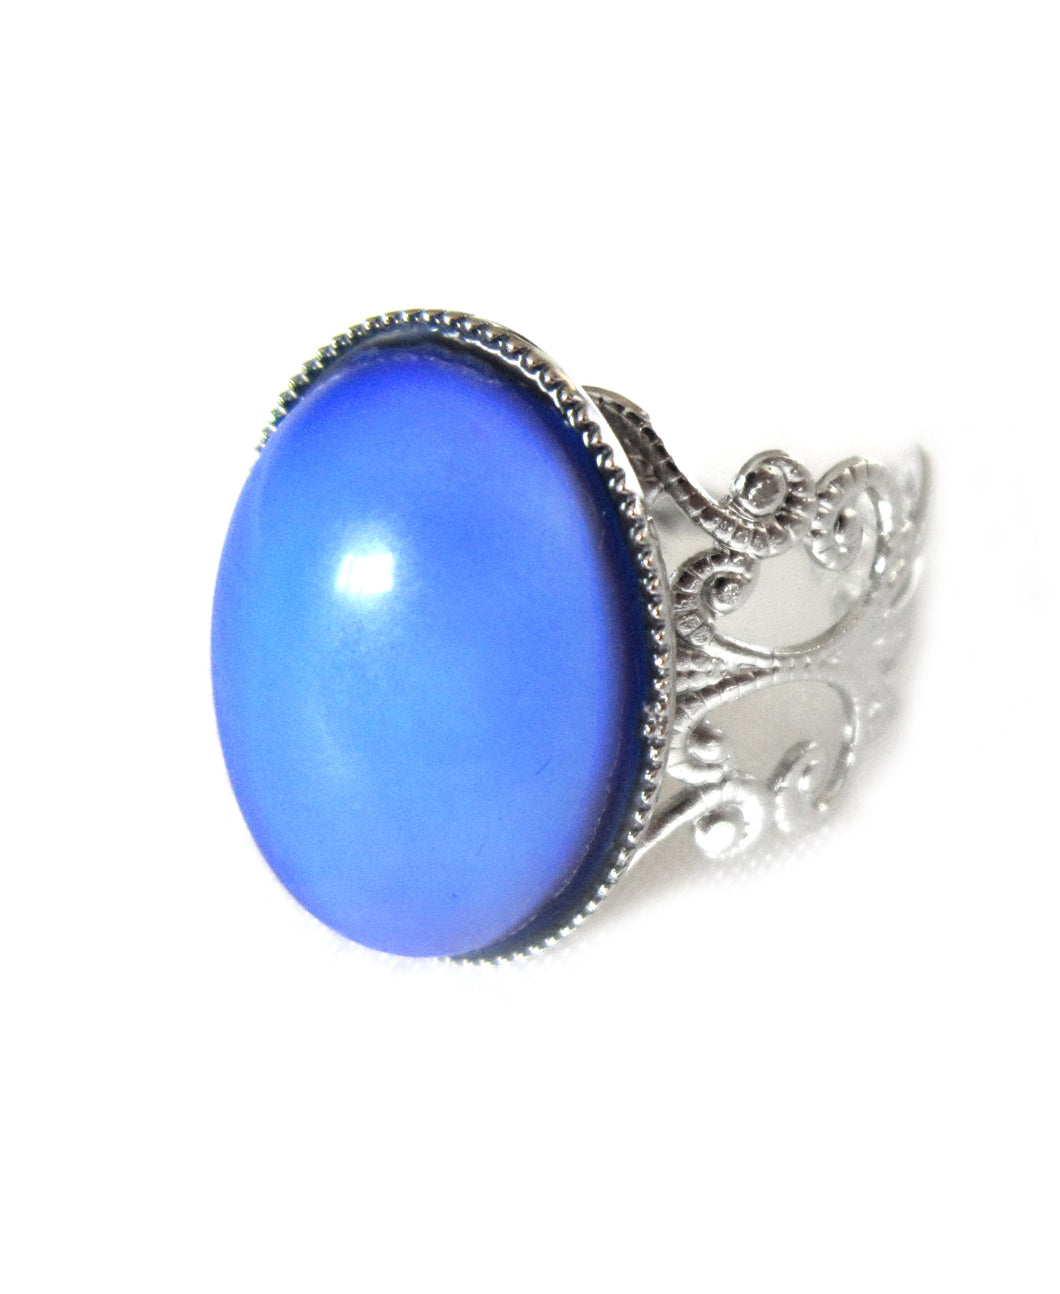 mood ring with silver band turning a blue color